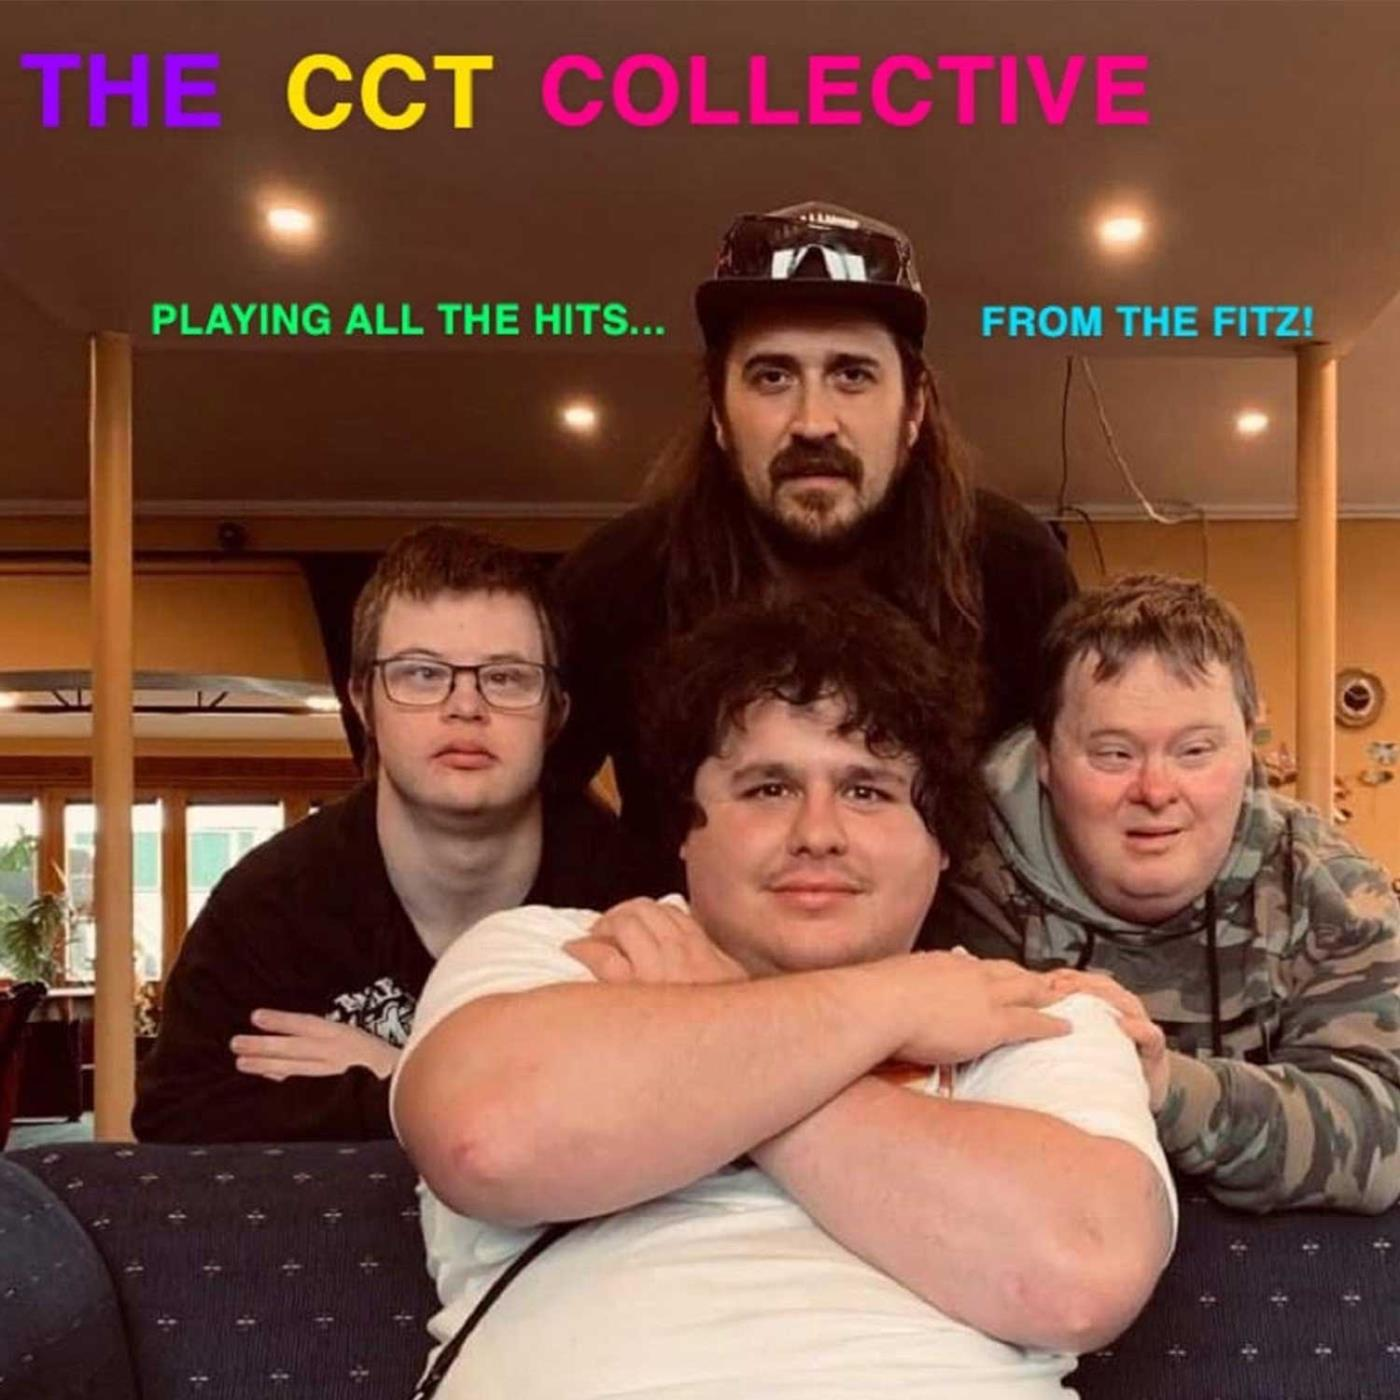 CCT Collective - The Hits from the Fitz